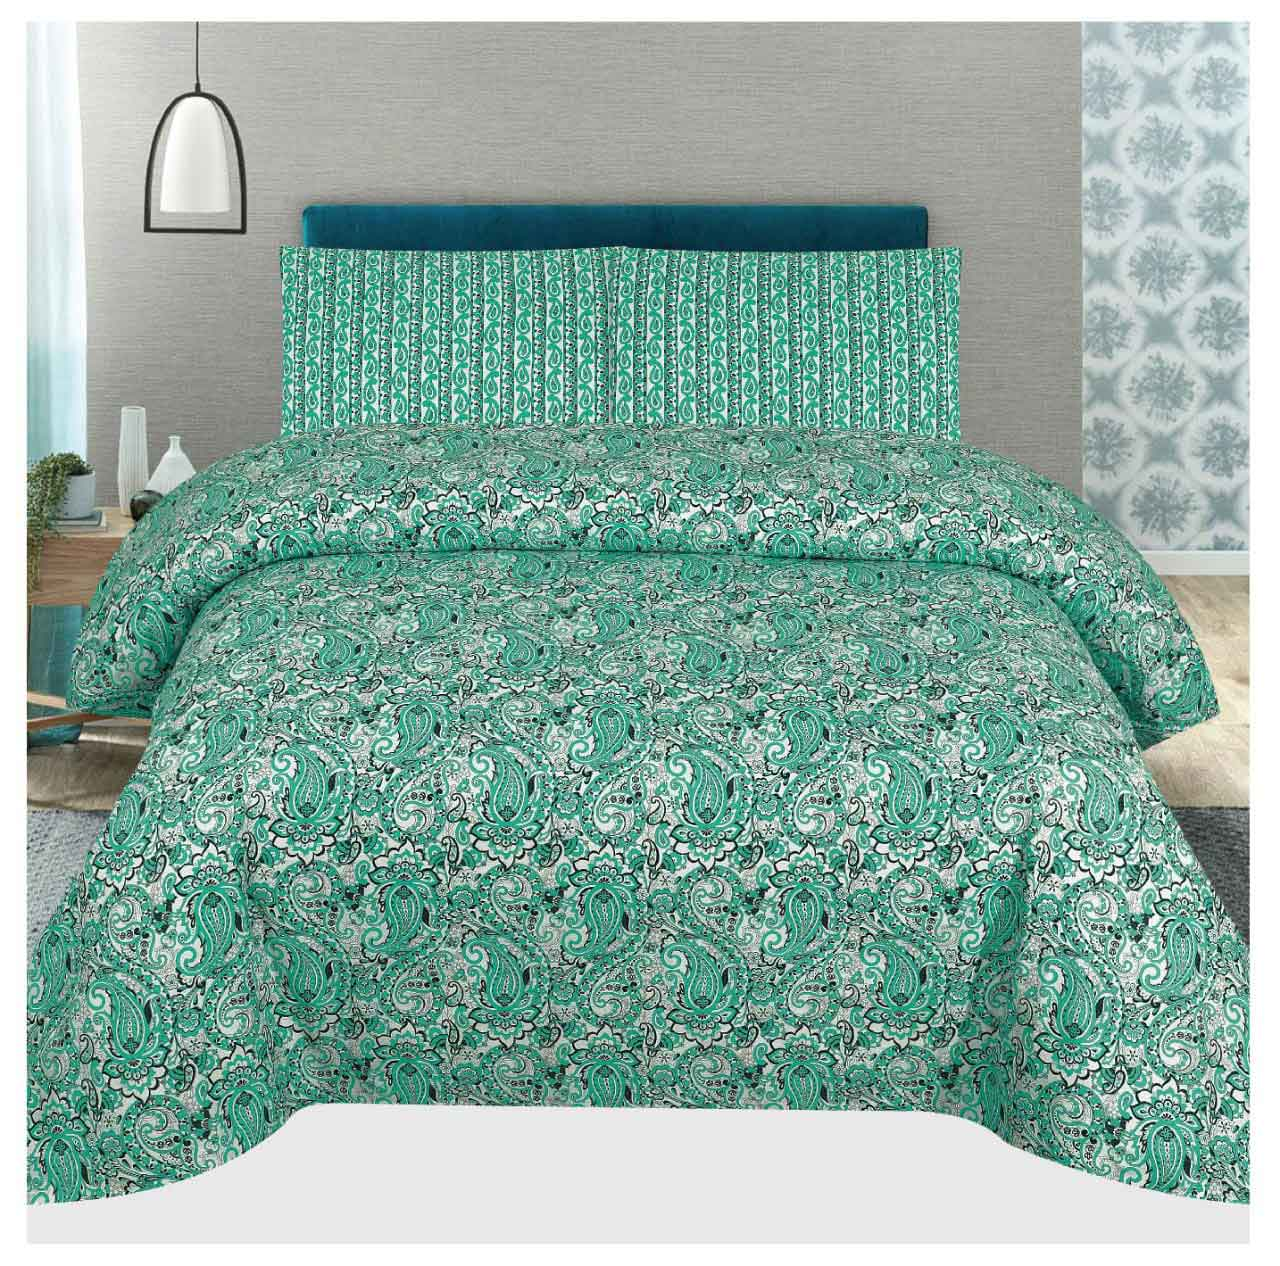 Grace d101 - Cotton PC King Size Bedsheet with 2 Pillow Covers.